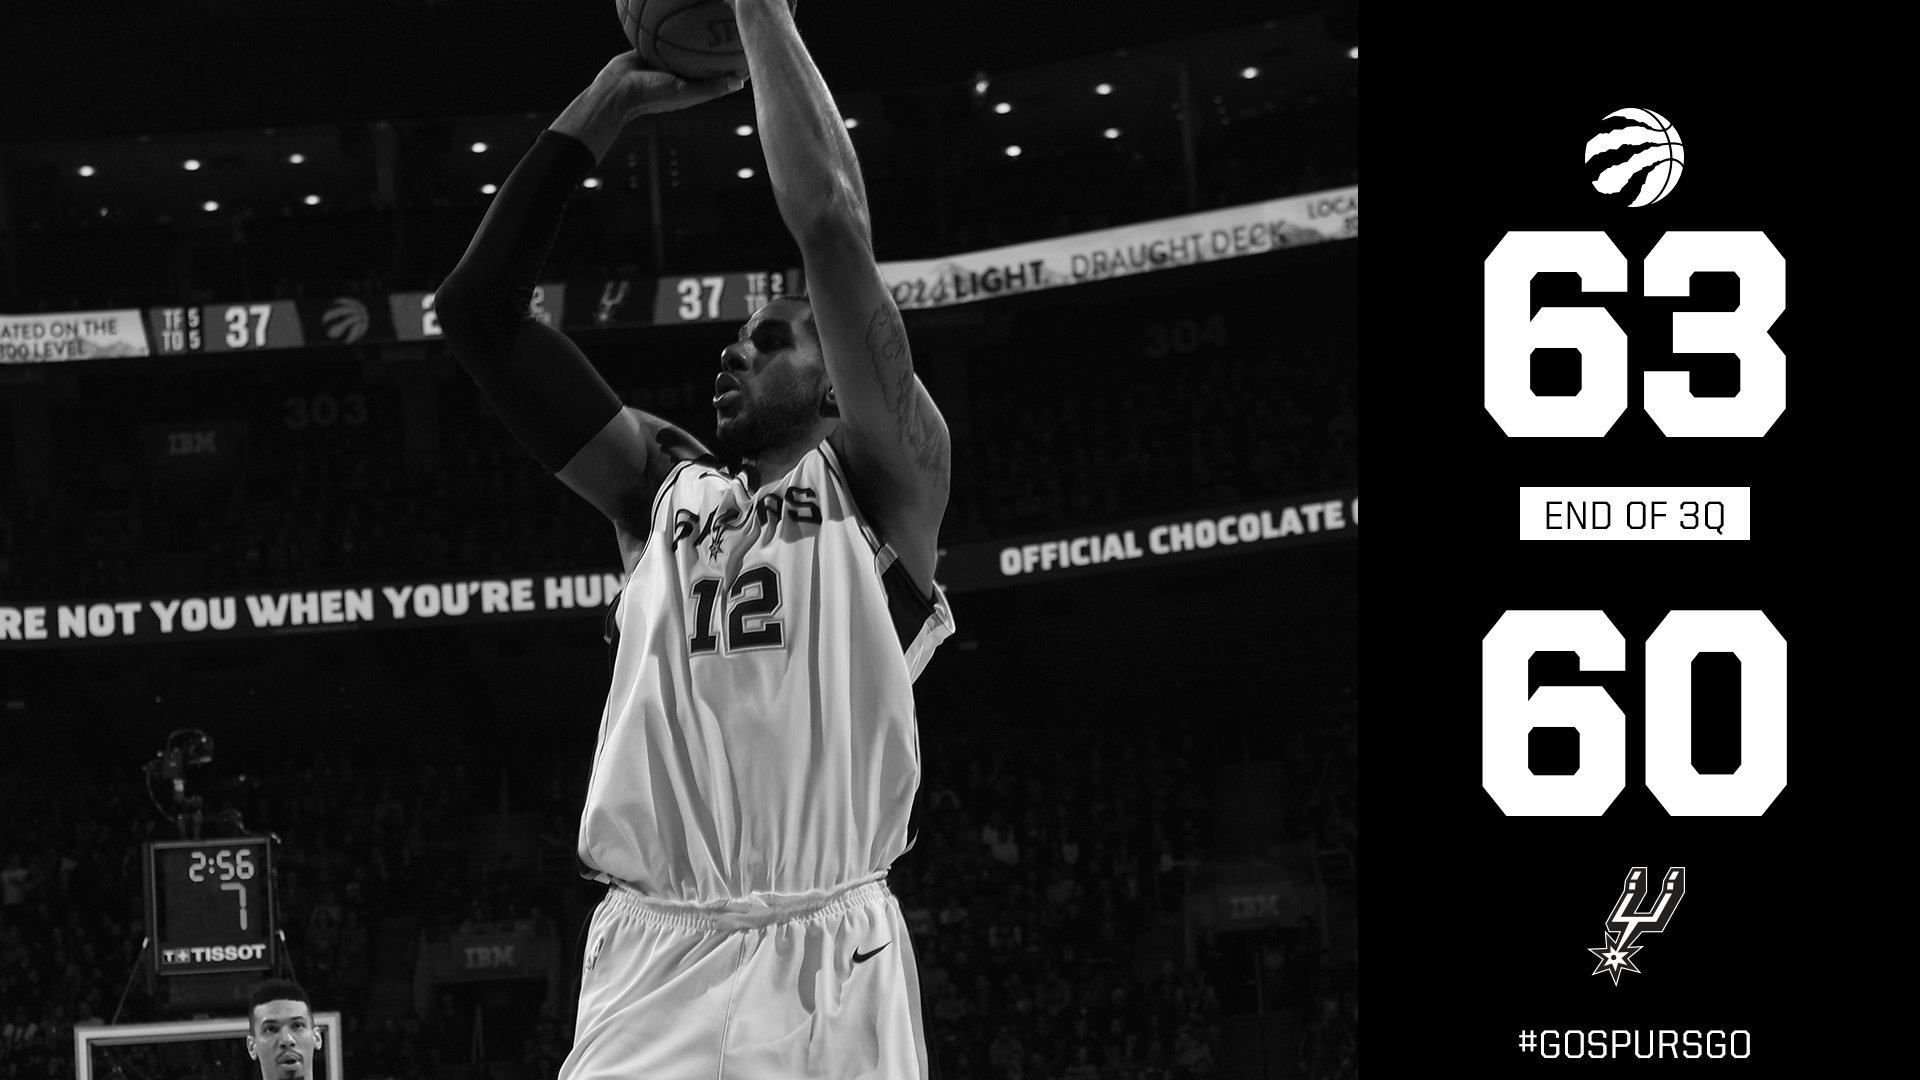 Fourth quarter coming up. #GOSPURSGO https://t.co/KDRkNSeC4N